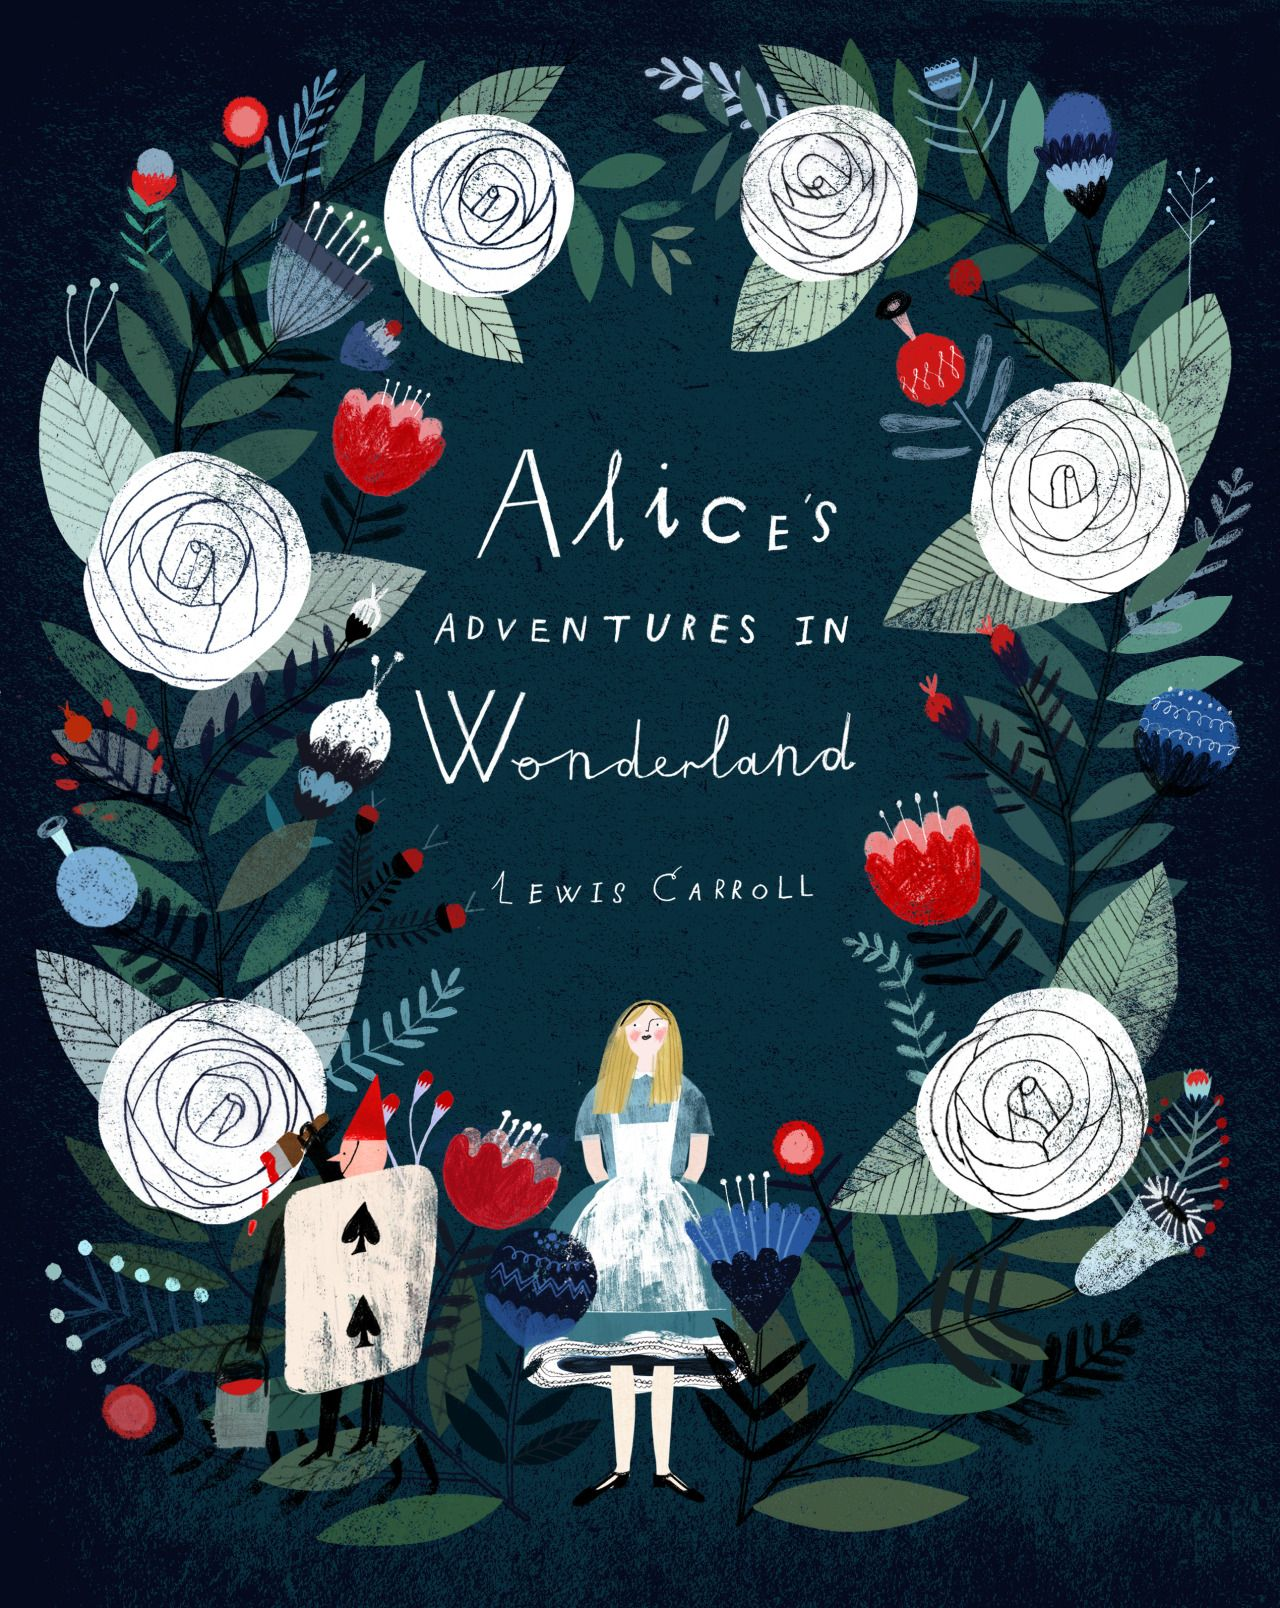 Book Cover Illustration ~ Alice s adventures in wonderland by lewis carroll design